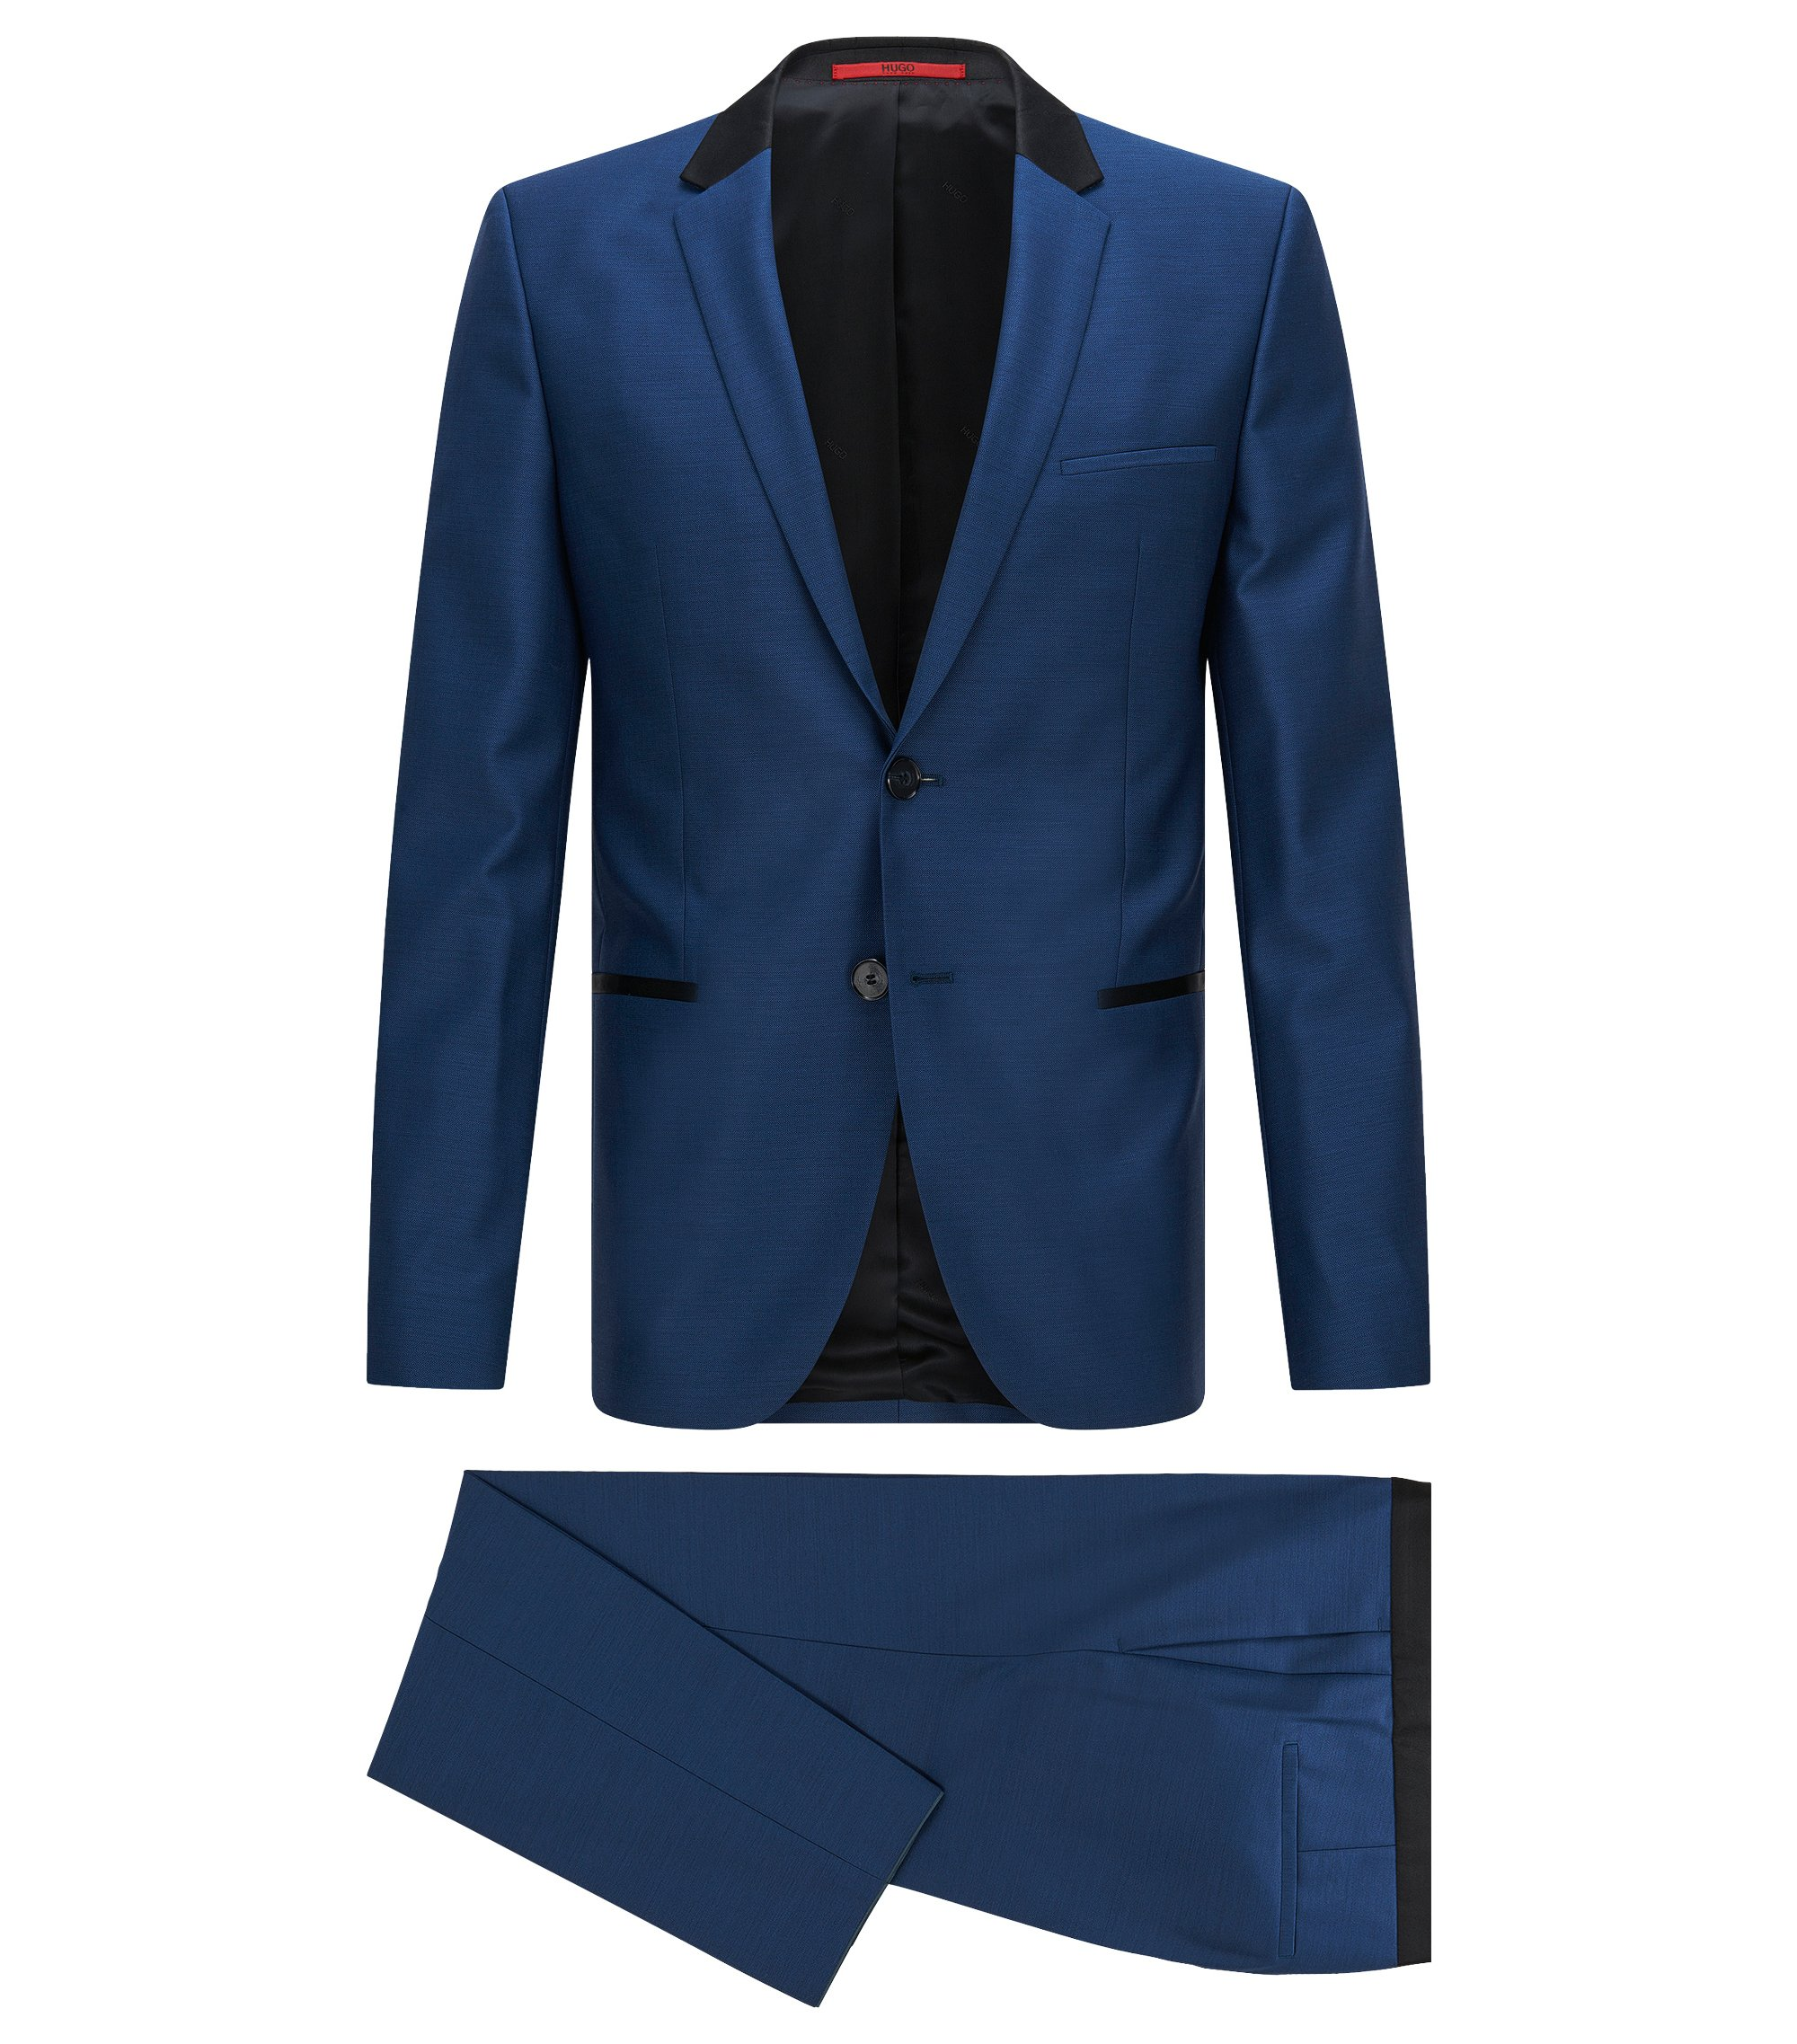 Virgin Wool Suit, Slim Fit | Anly/Hetin, Open Blue